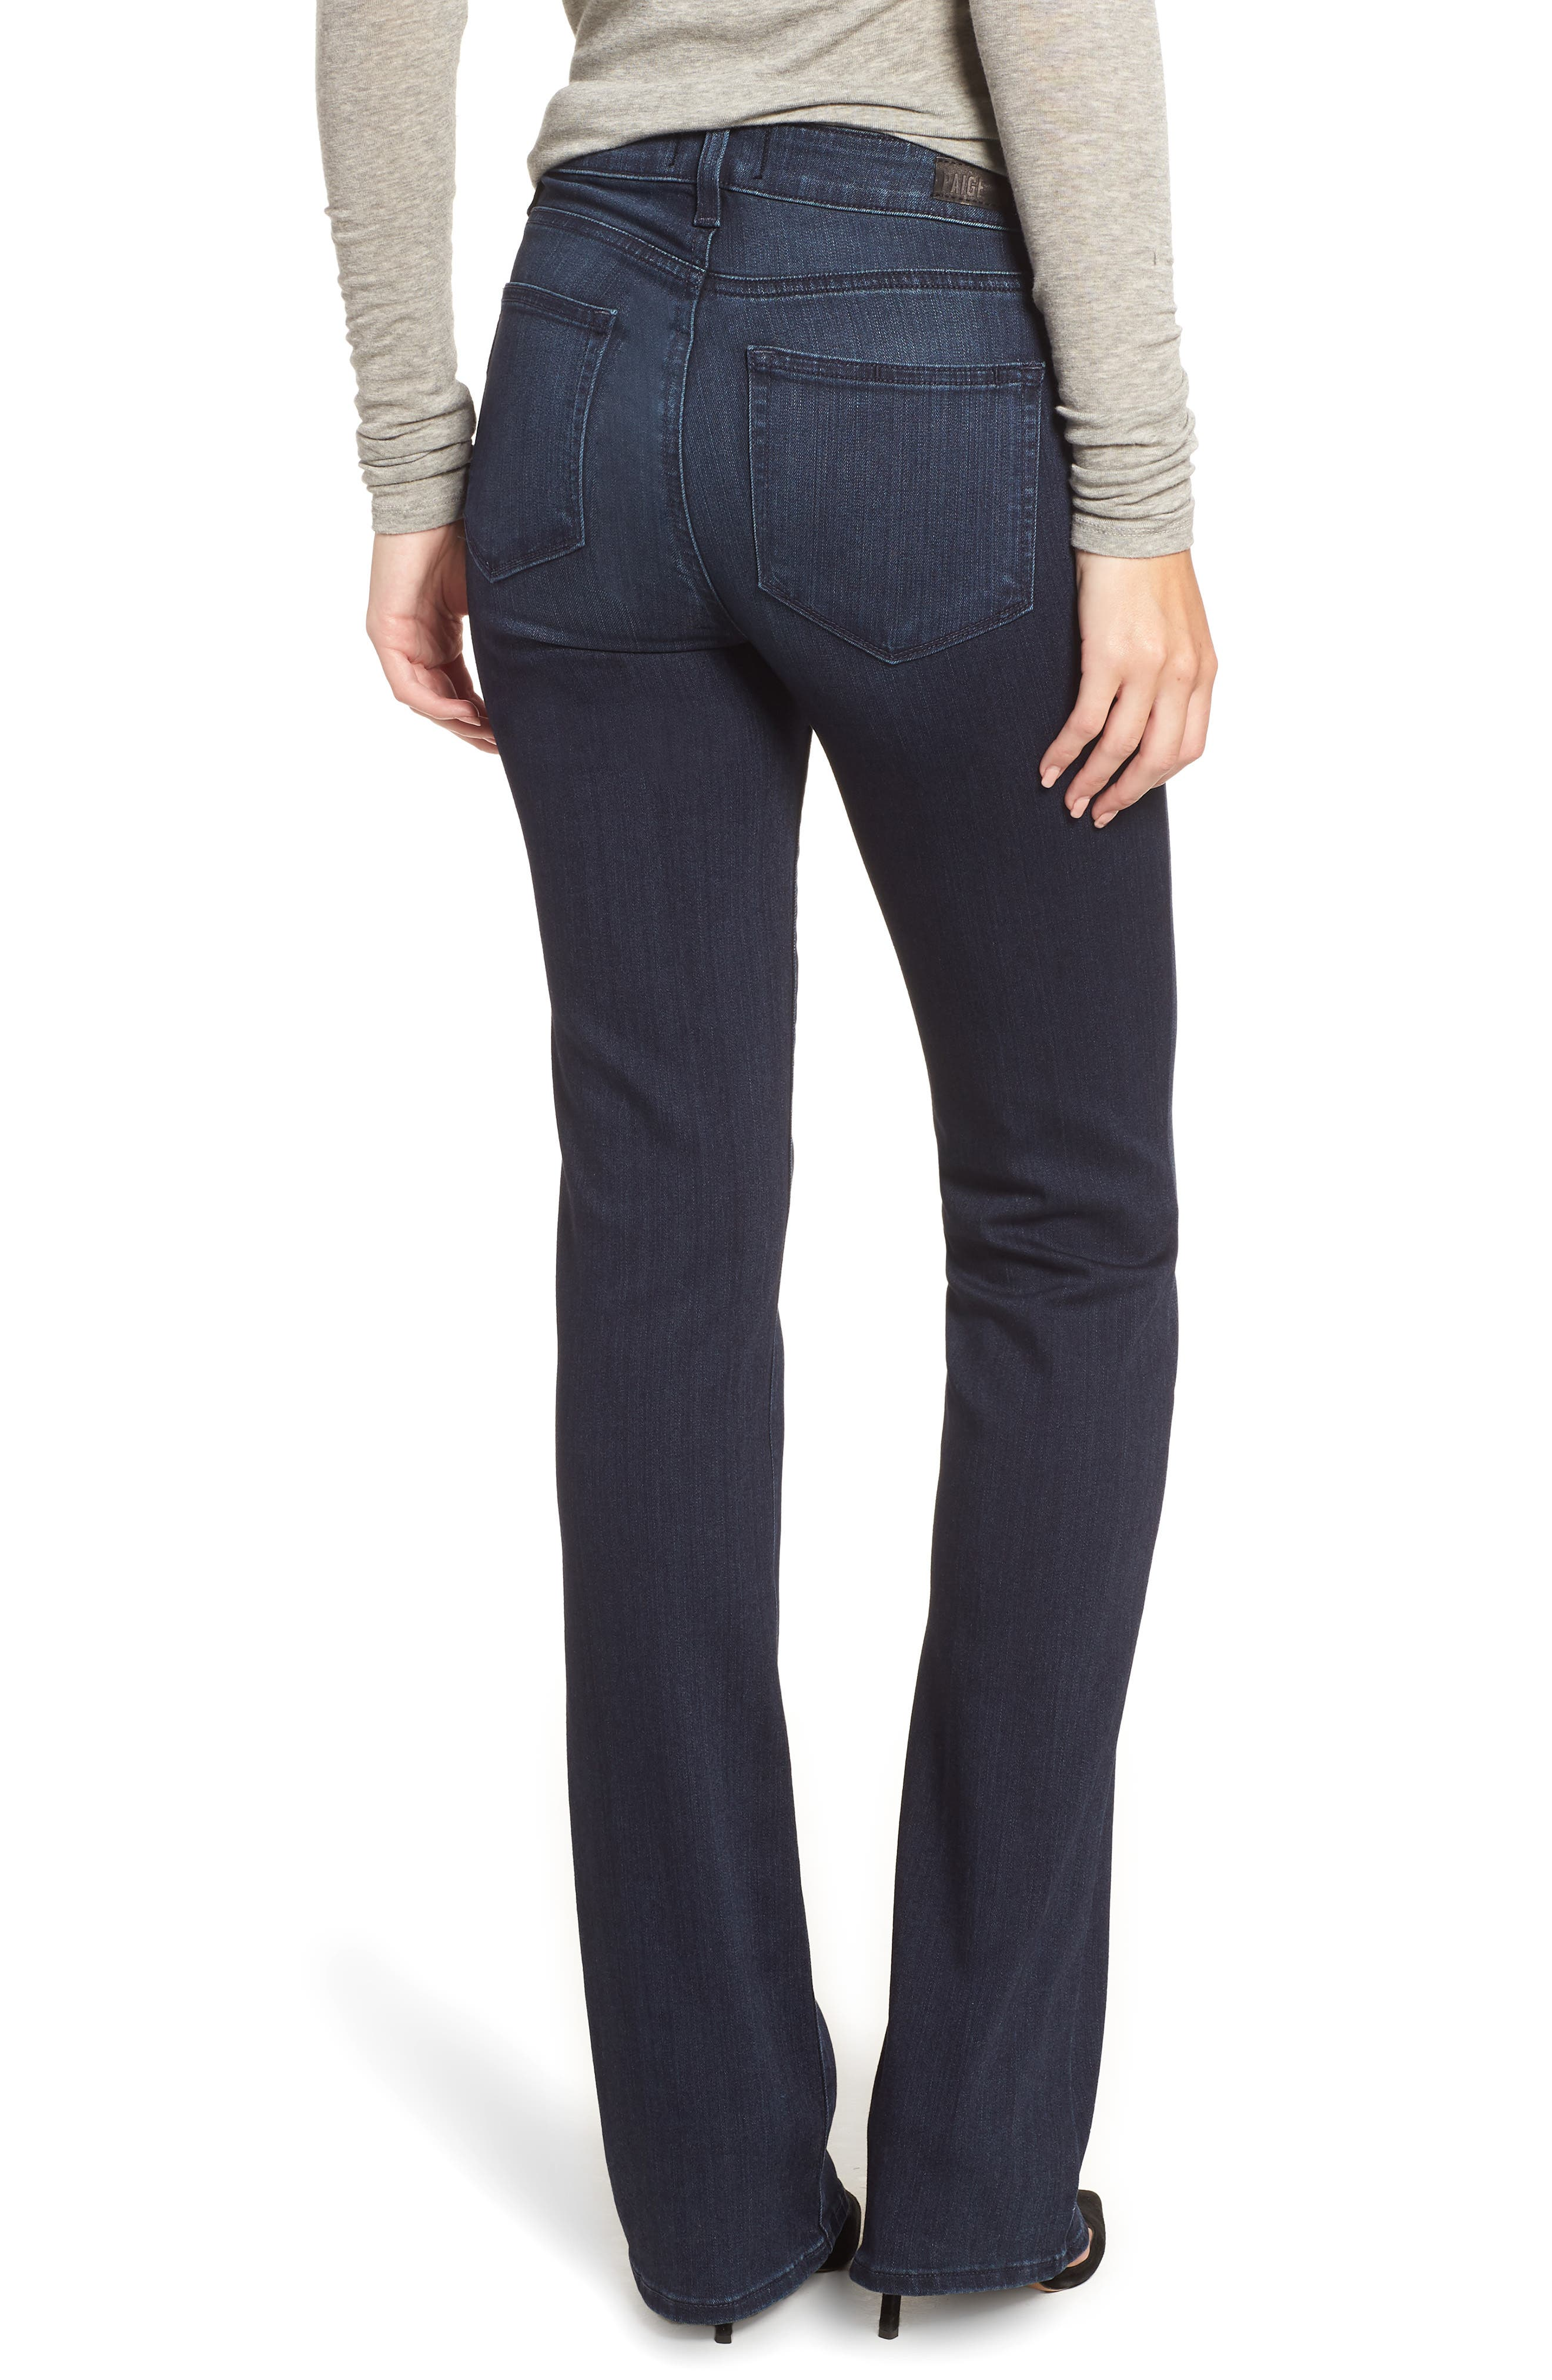 Manhattan High Waist Bootcut Jeans,                             Alternate thumbnail 2, color,                             401